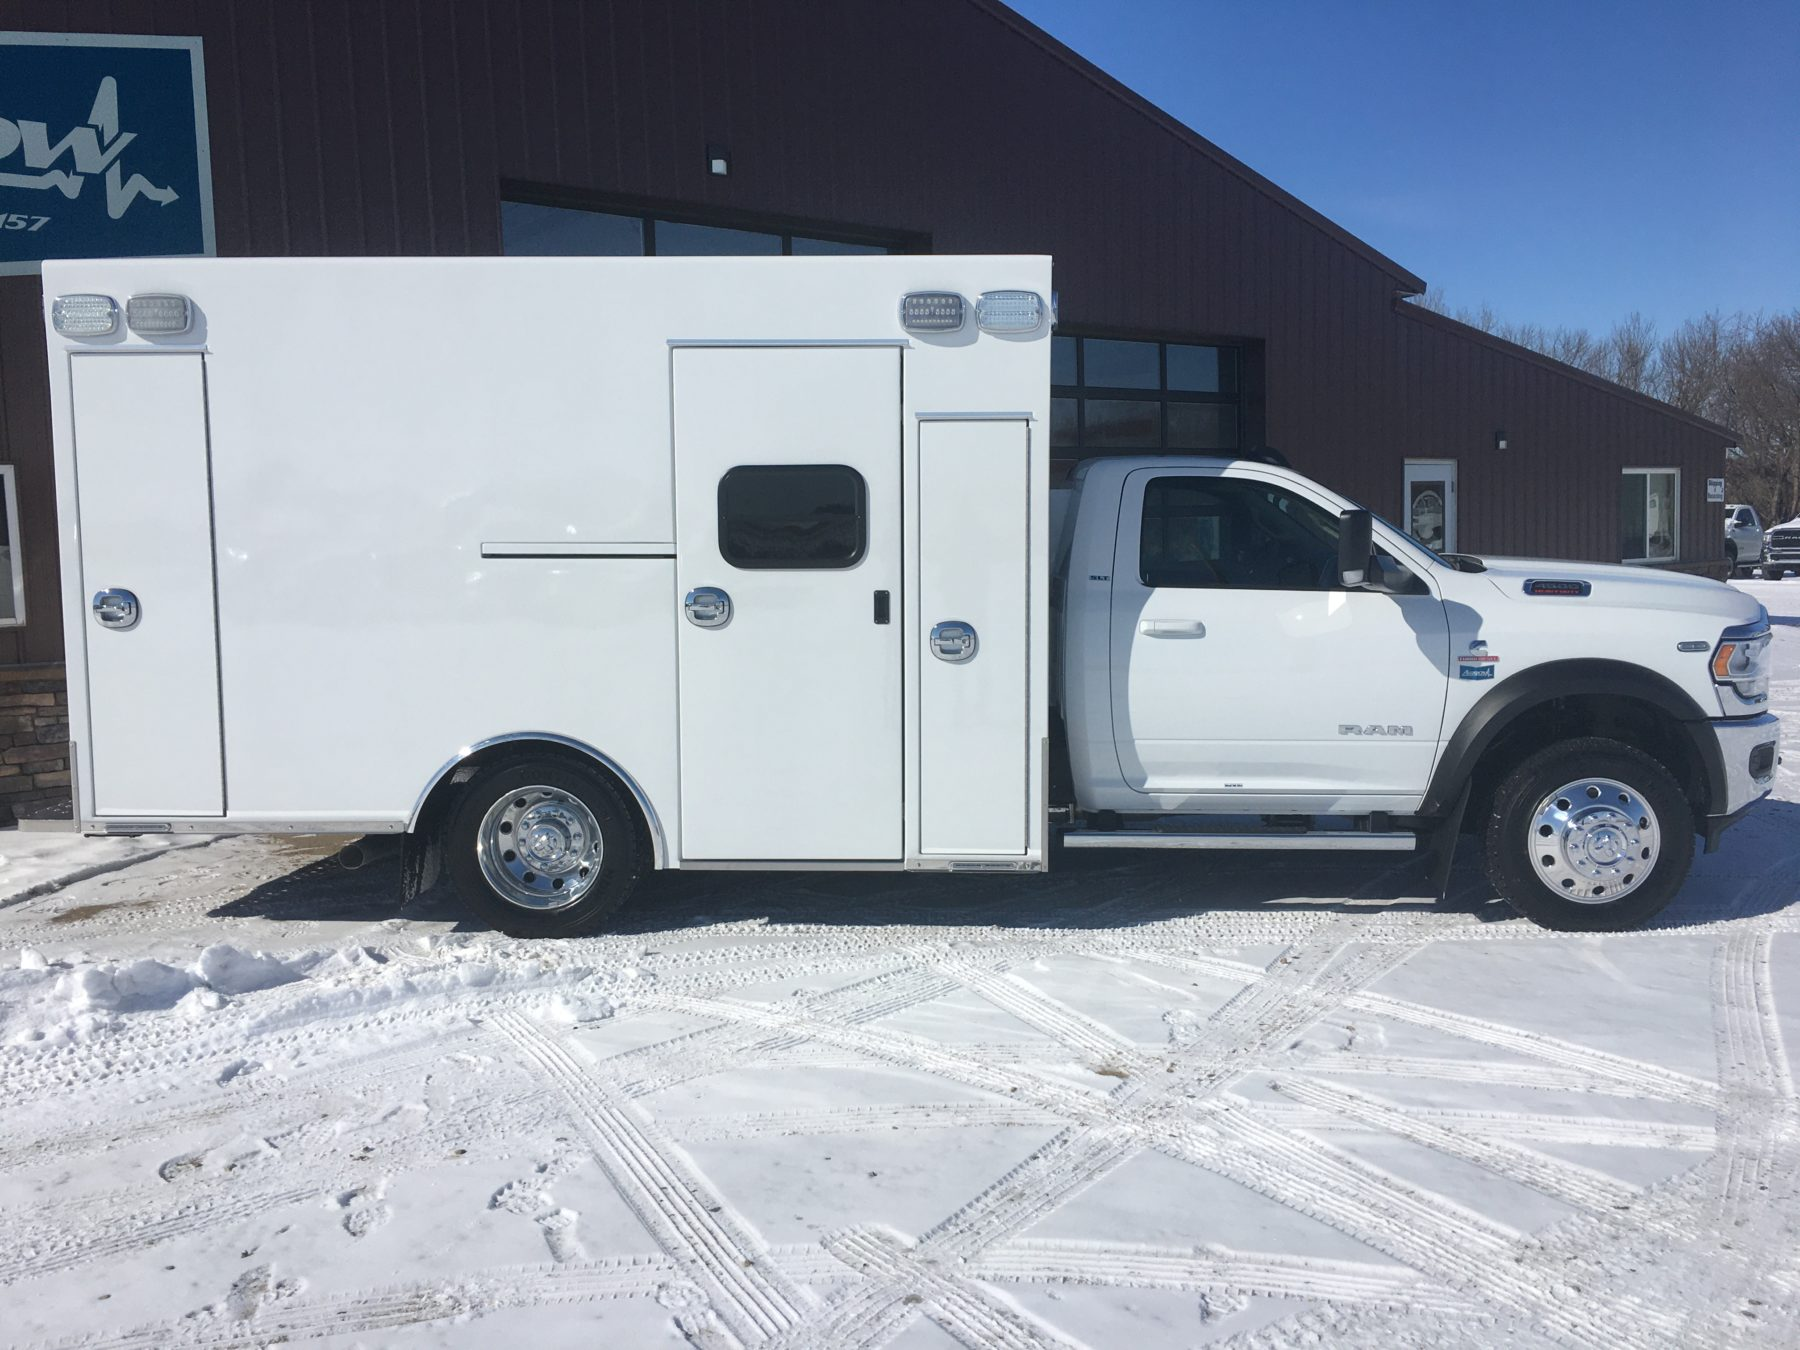 2020 Ram 4500 4x4 Heavy Duty Ambulance For Sale – Picture 3